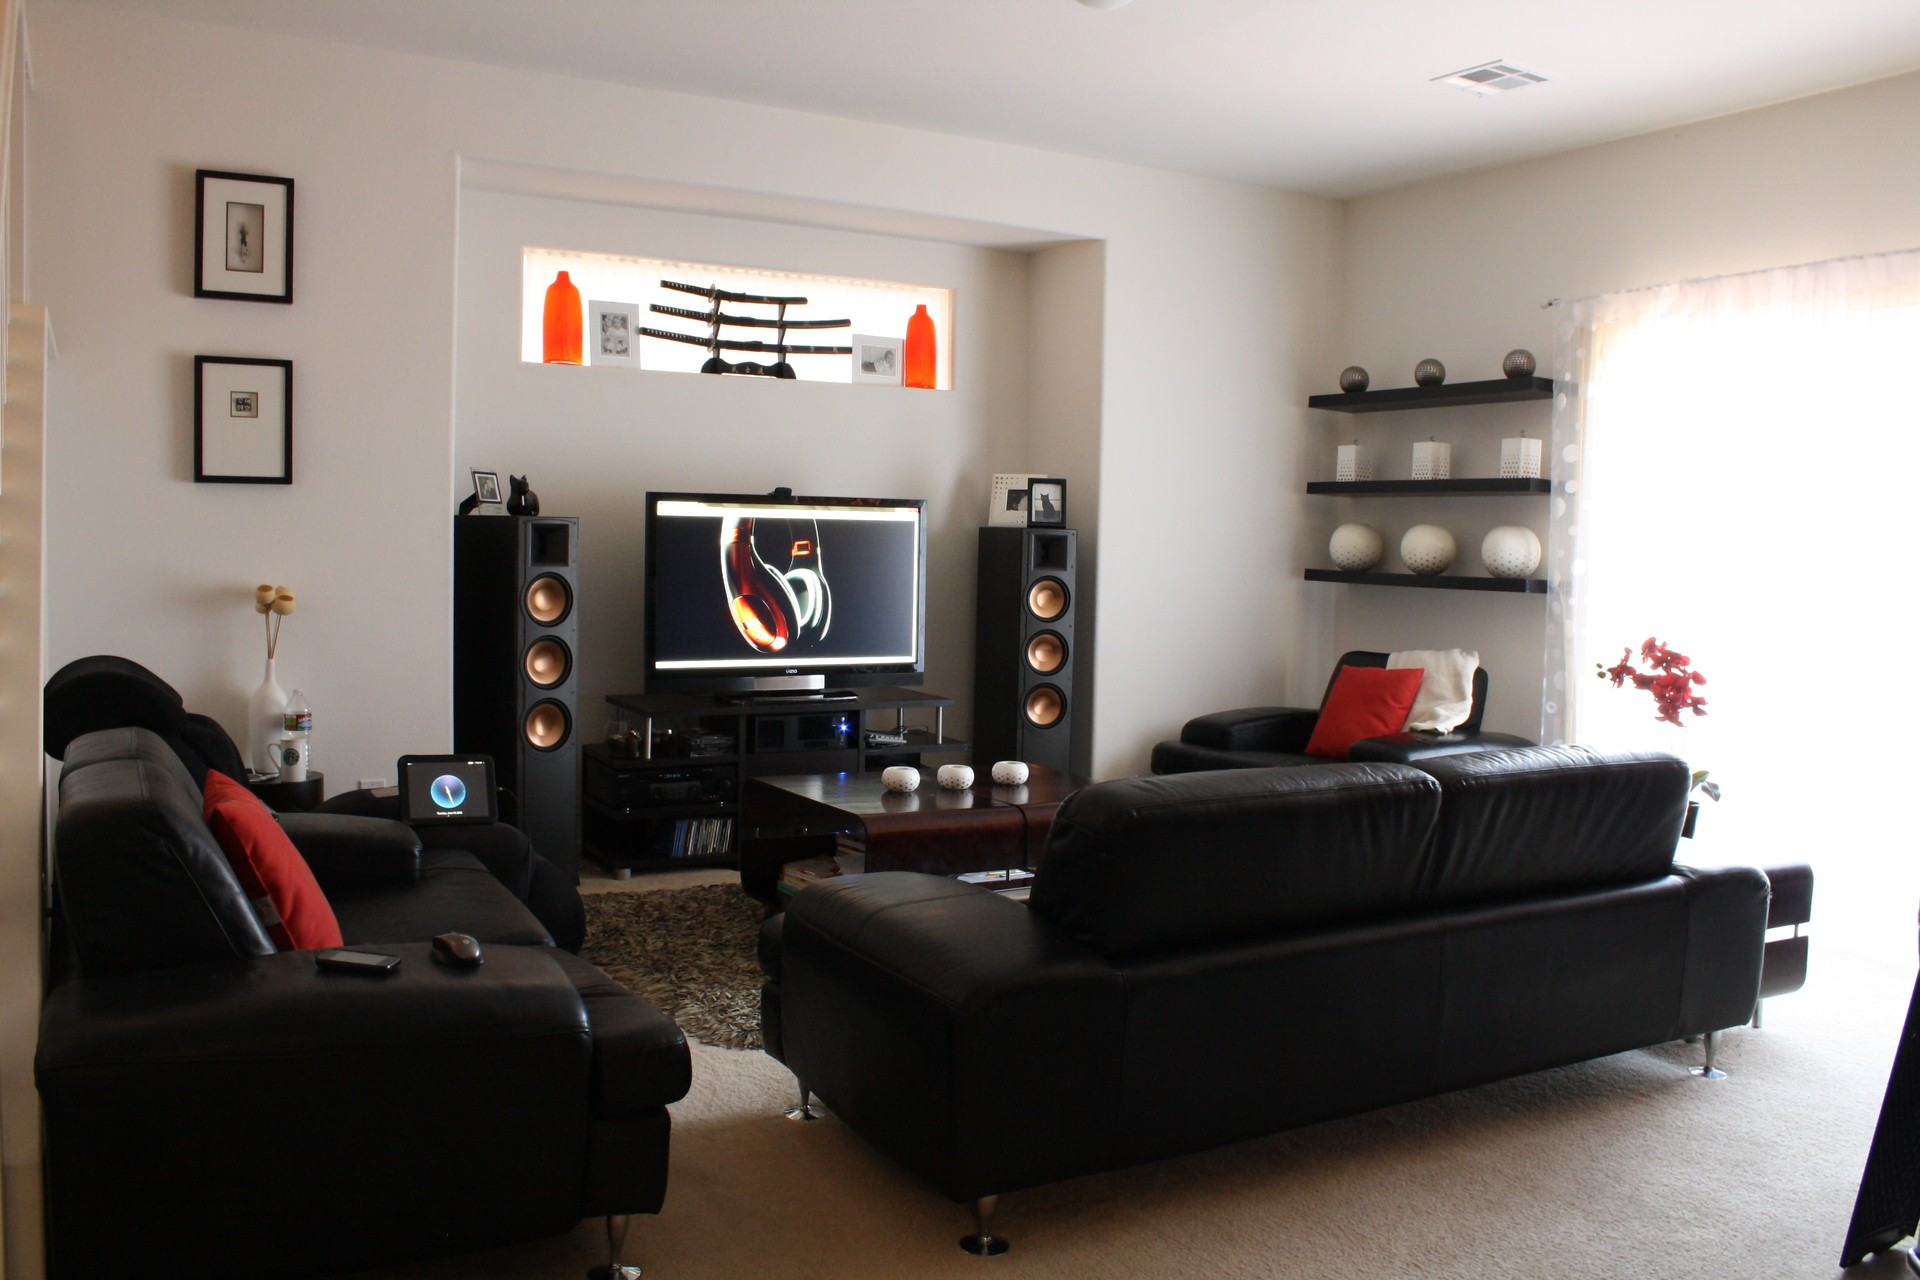 Small Modern Living Room Design Ideas - PropertyPro Insider on couch design, couch small kitchen, couch writing, couch furniture,